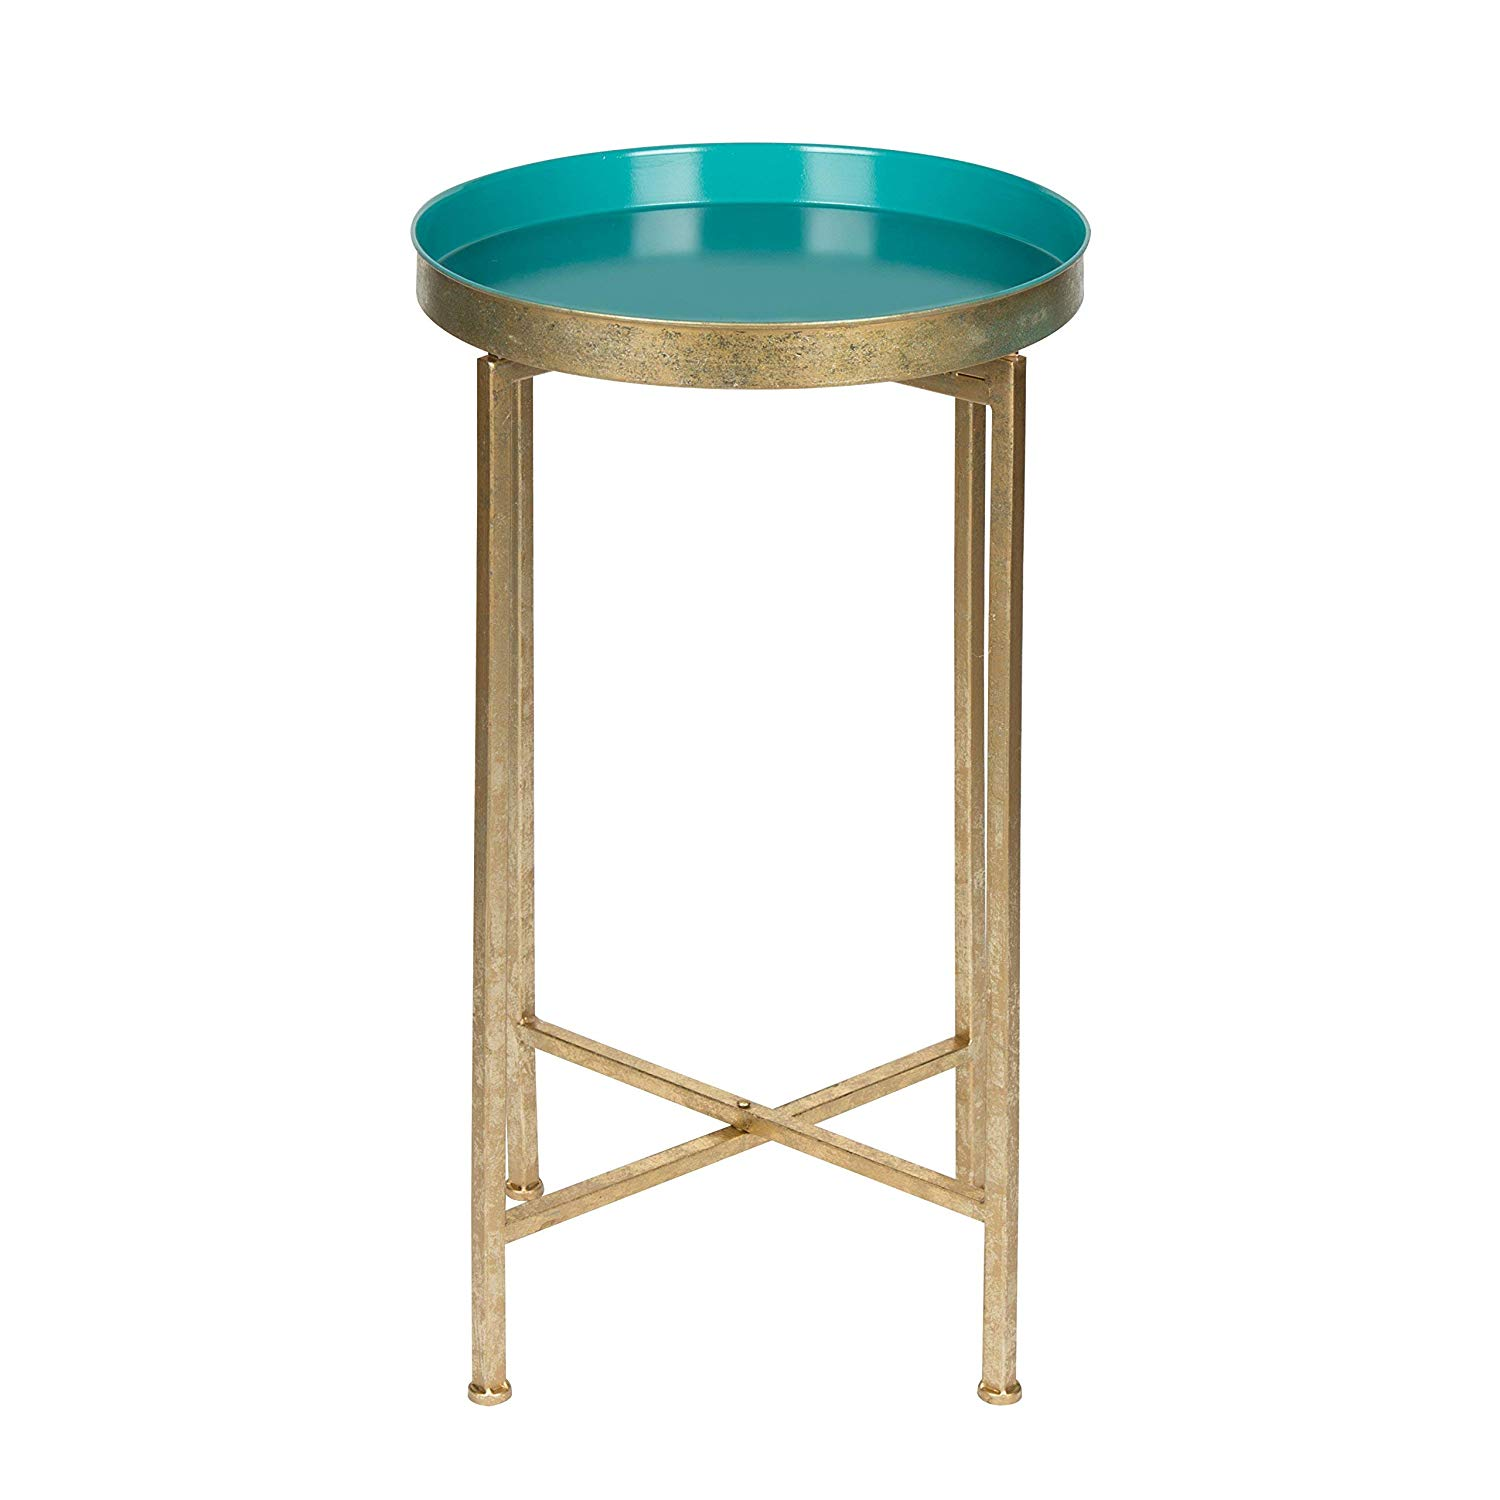 kate and laurel celia round metal foldable tray accent table teal gold kitchen dining coffee counter lamps end with lamp attached brass corner christmas tree storage box target